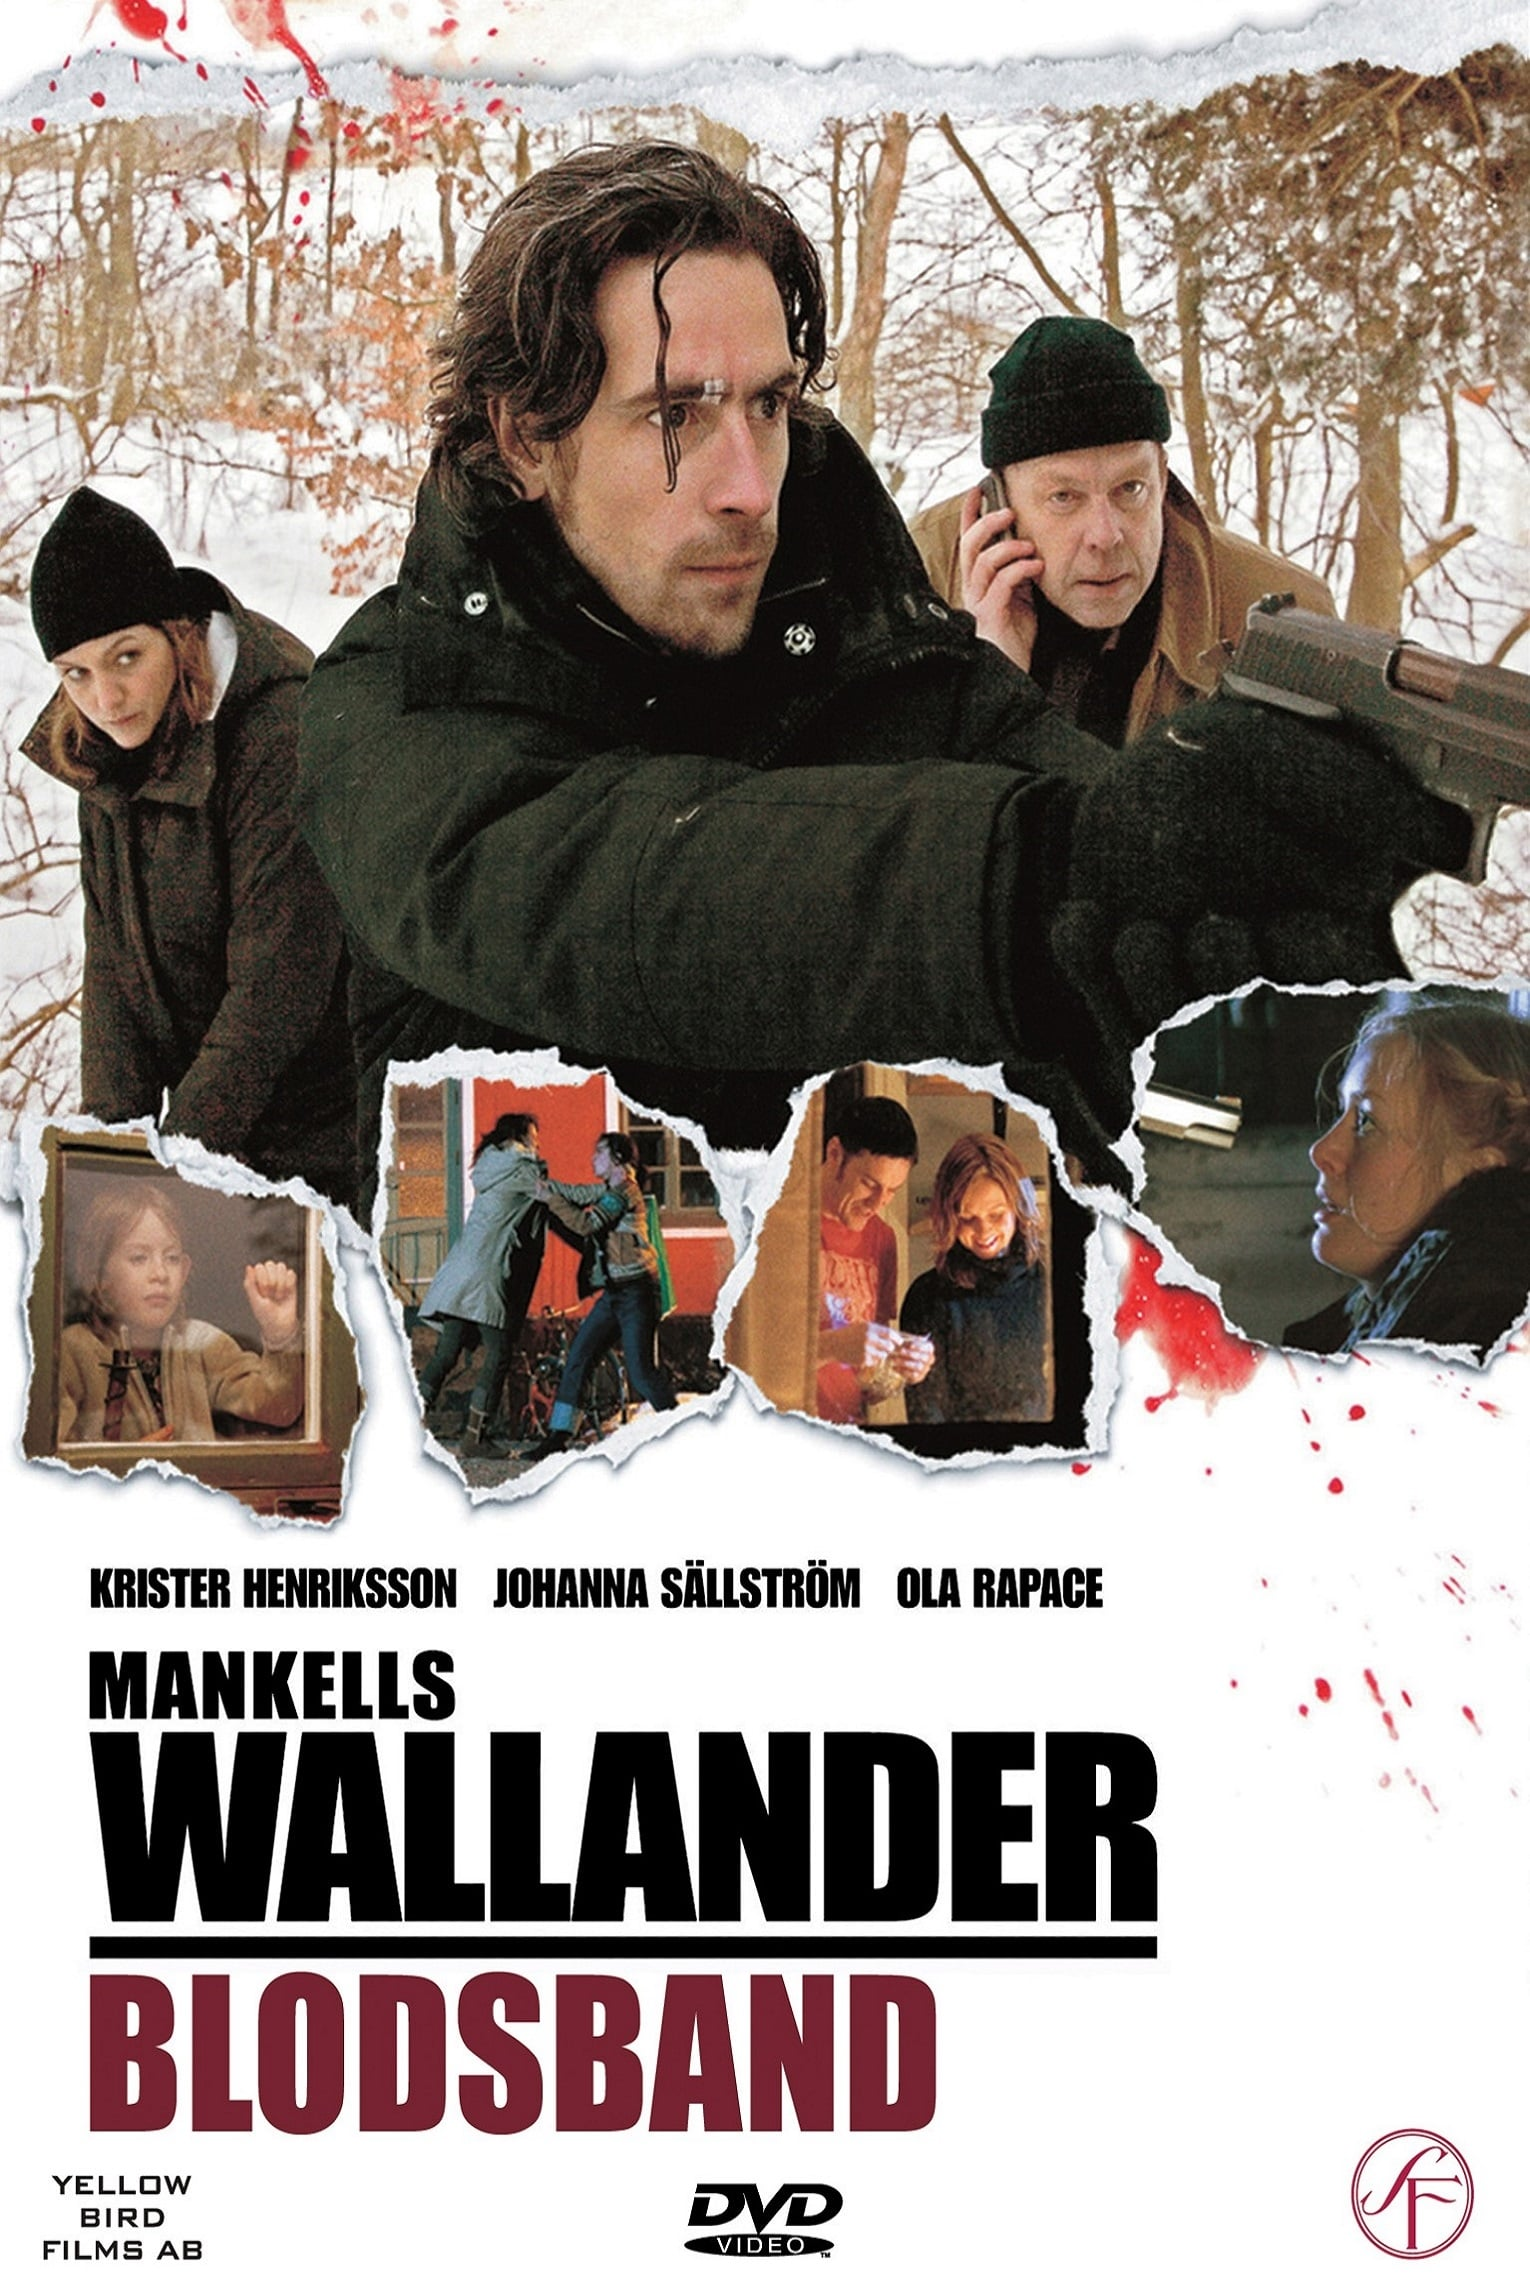 Wallander 11 - Blodsband (2006)